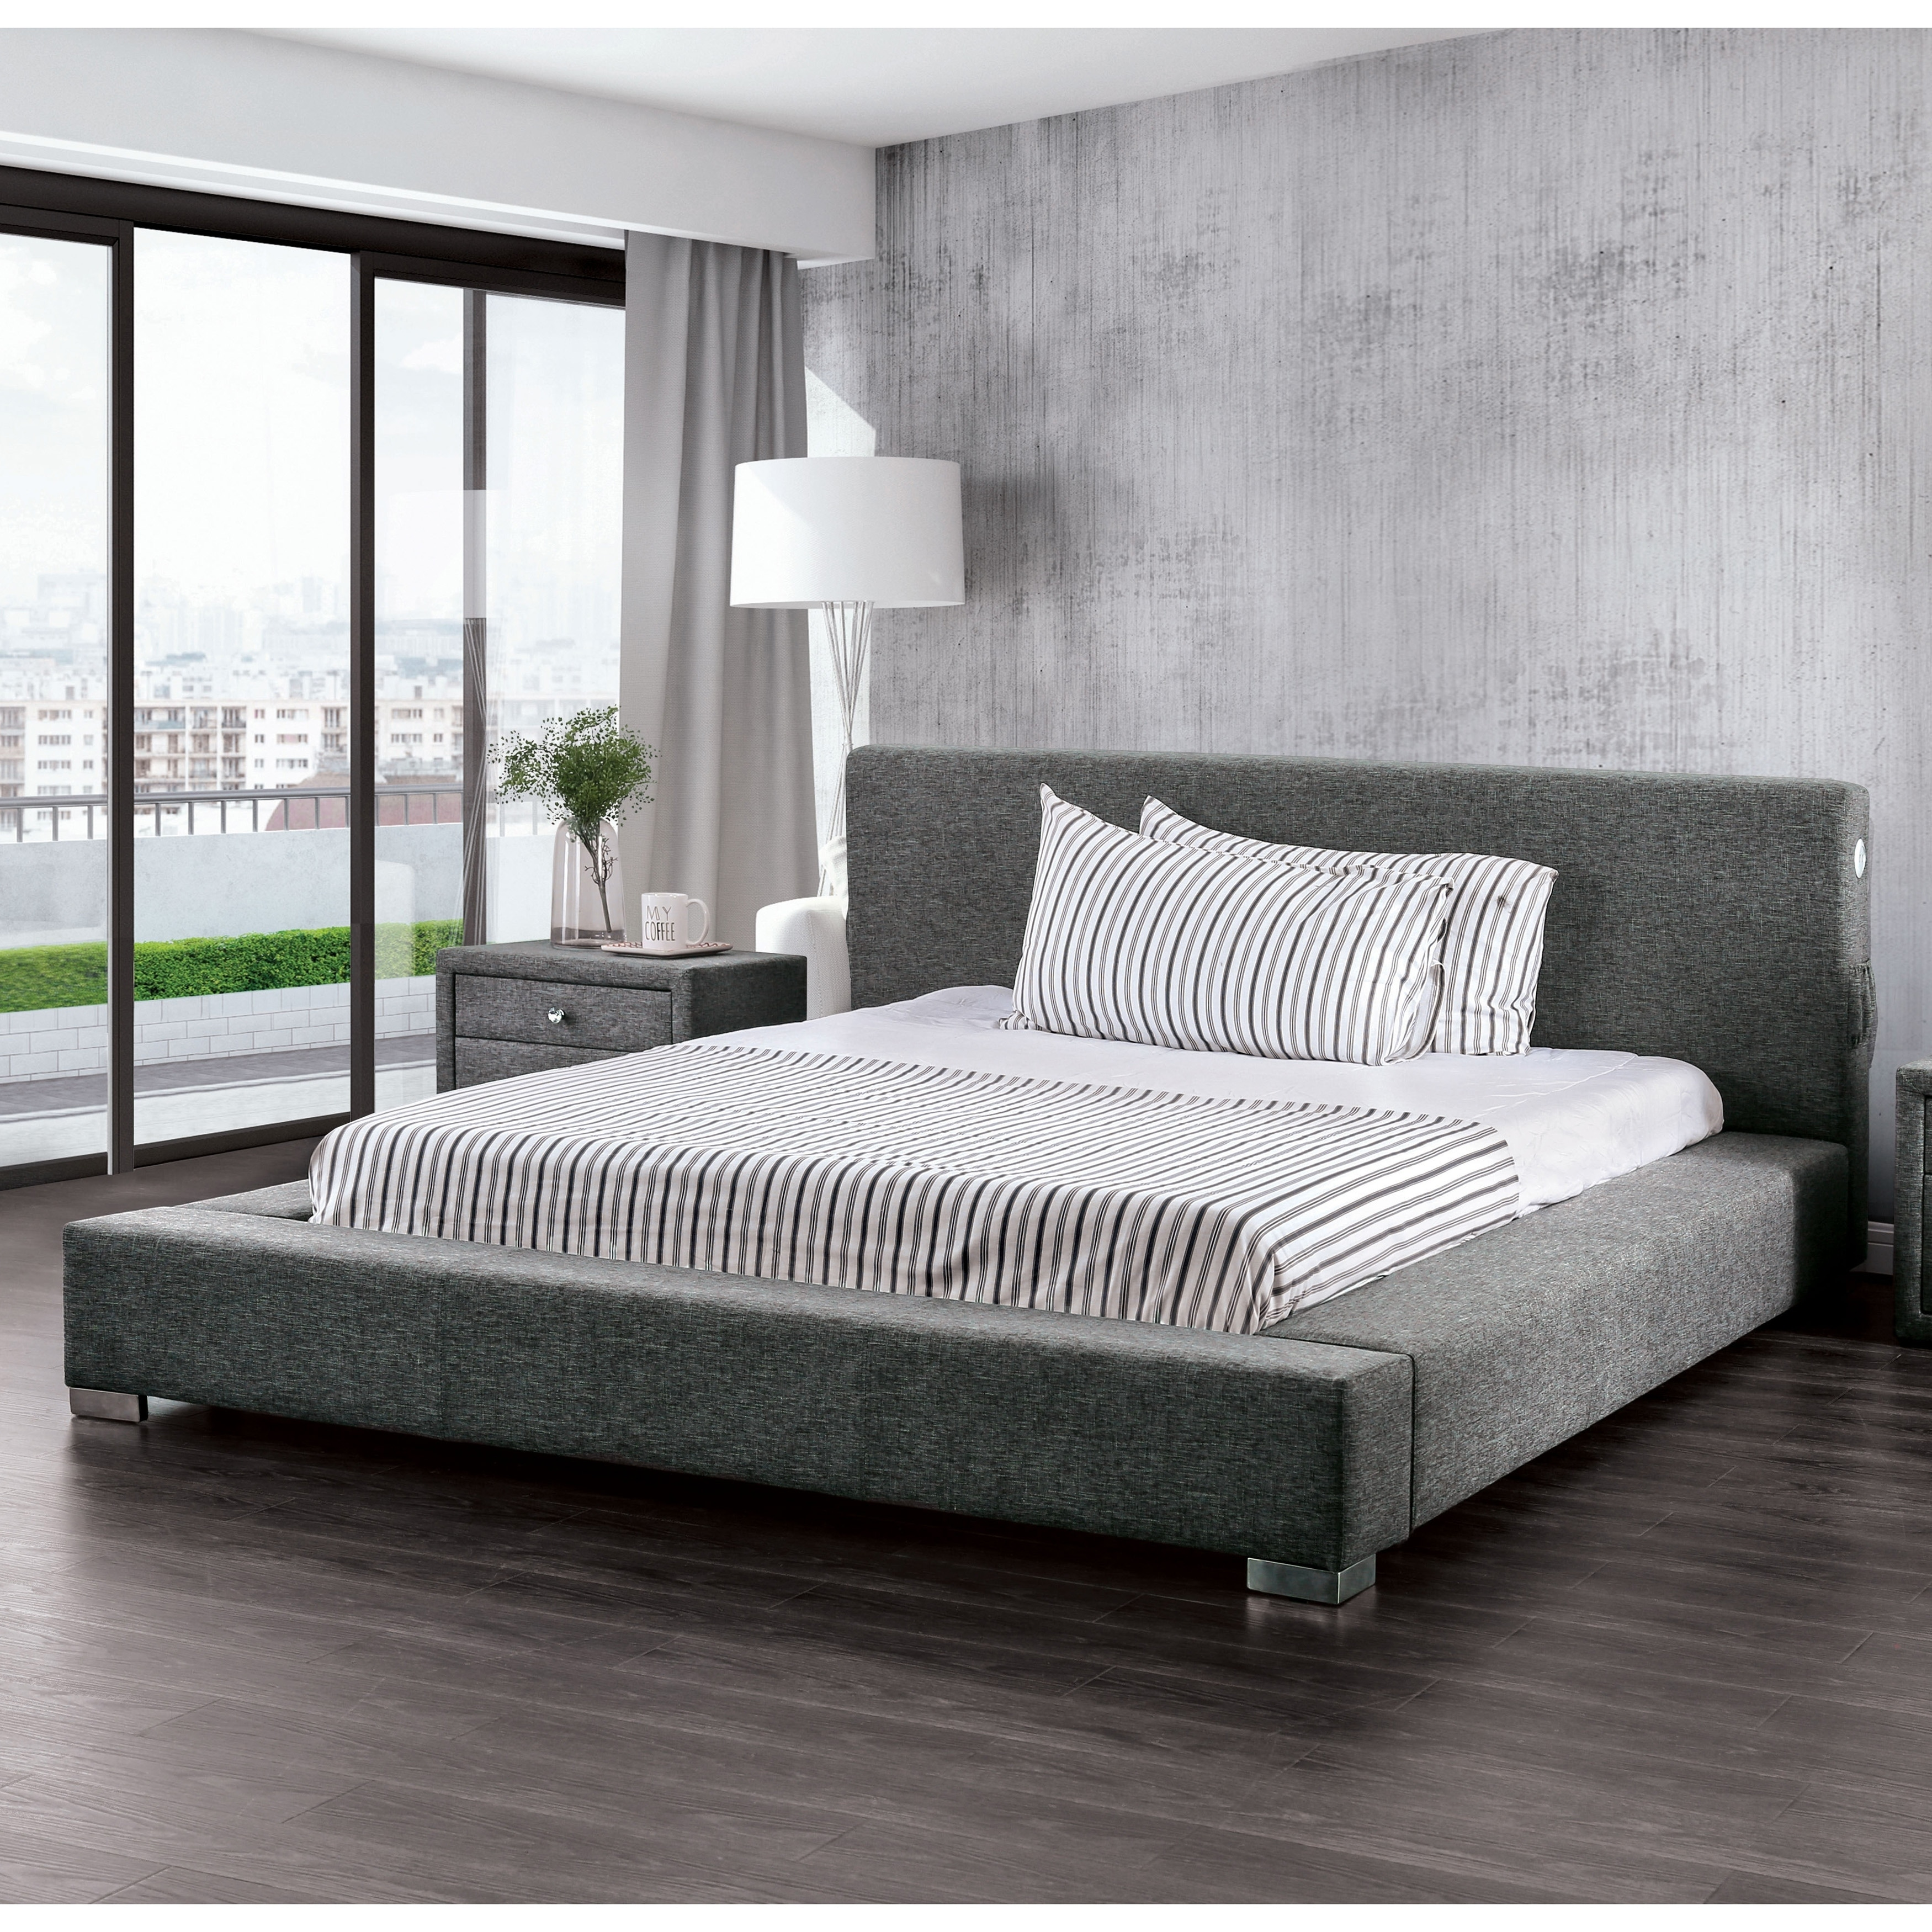 Furniture Of America Fitzroy Low Profile Grey Upholstered Bed On Free Shipping Today 25324468